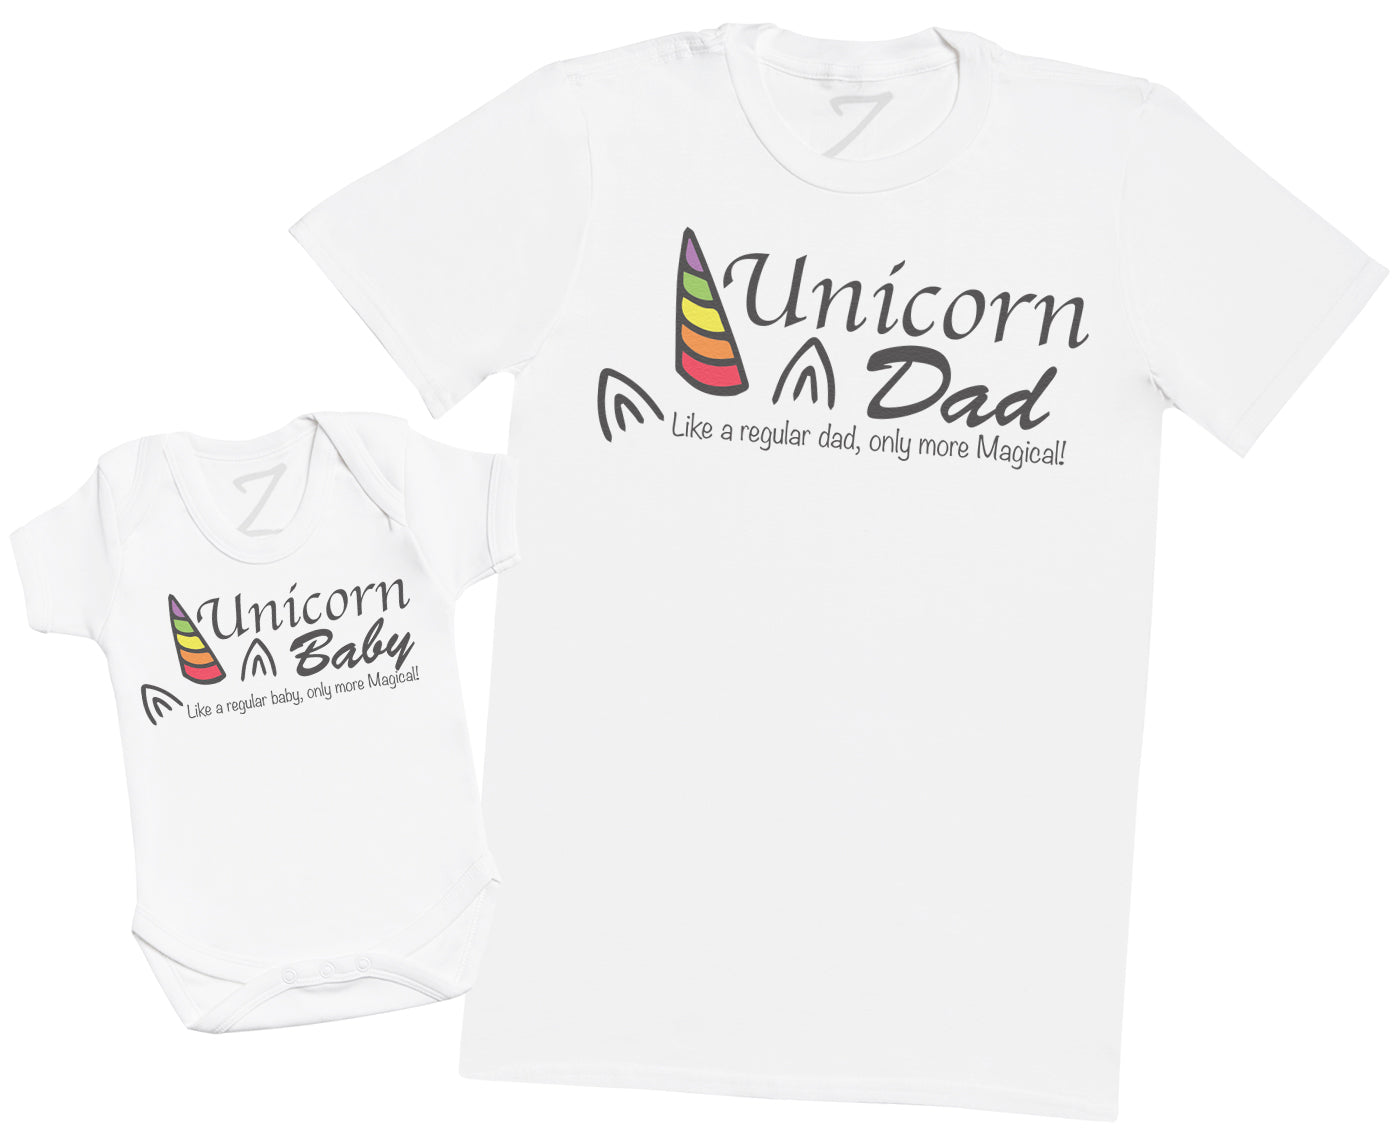 Unicorn Baby & Dad, Only more Magical - Mens T Shirt & Baby Bodysuit